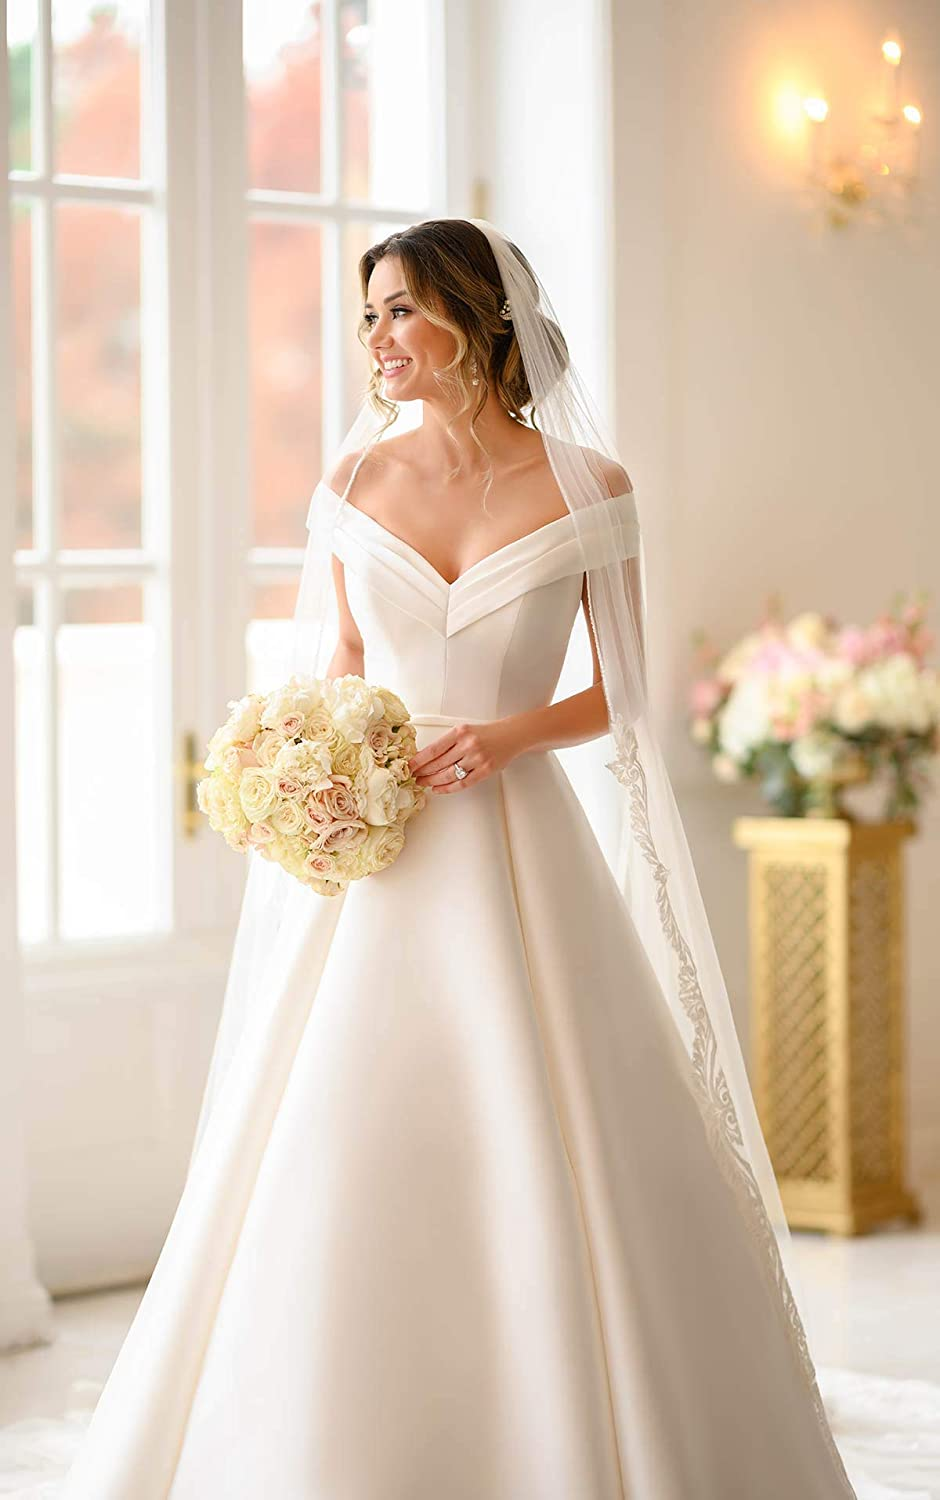 Lilyla Womens Vintage 3//4 Sleeves Bridal Ball Gown Sweetheart Lace Wedding Dress for Bride 2019